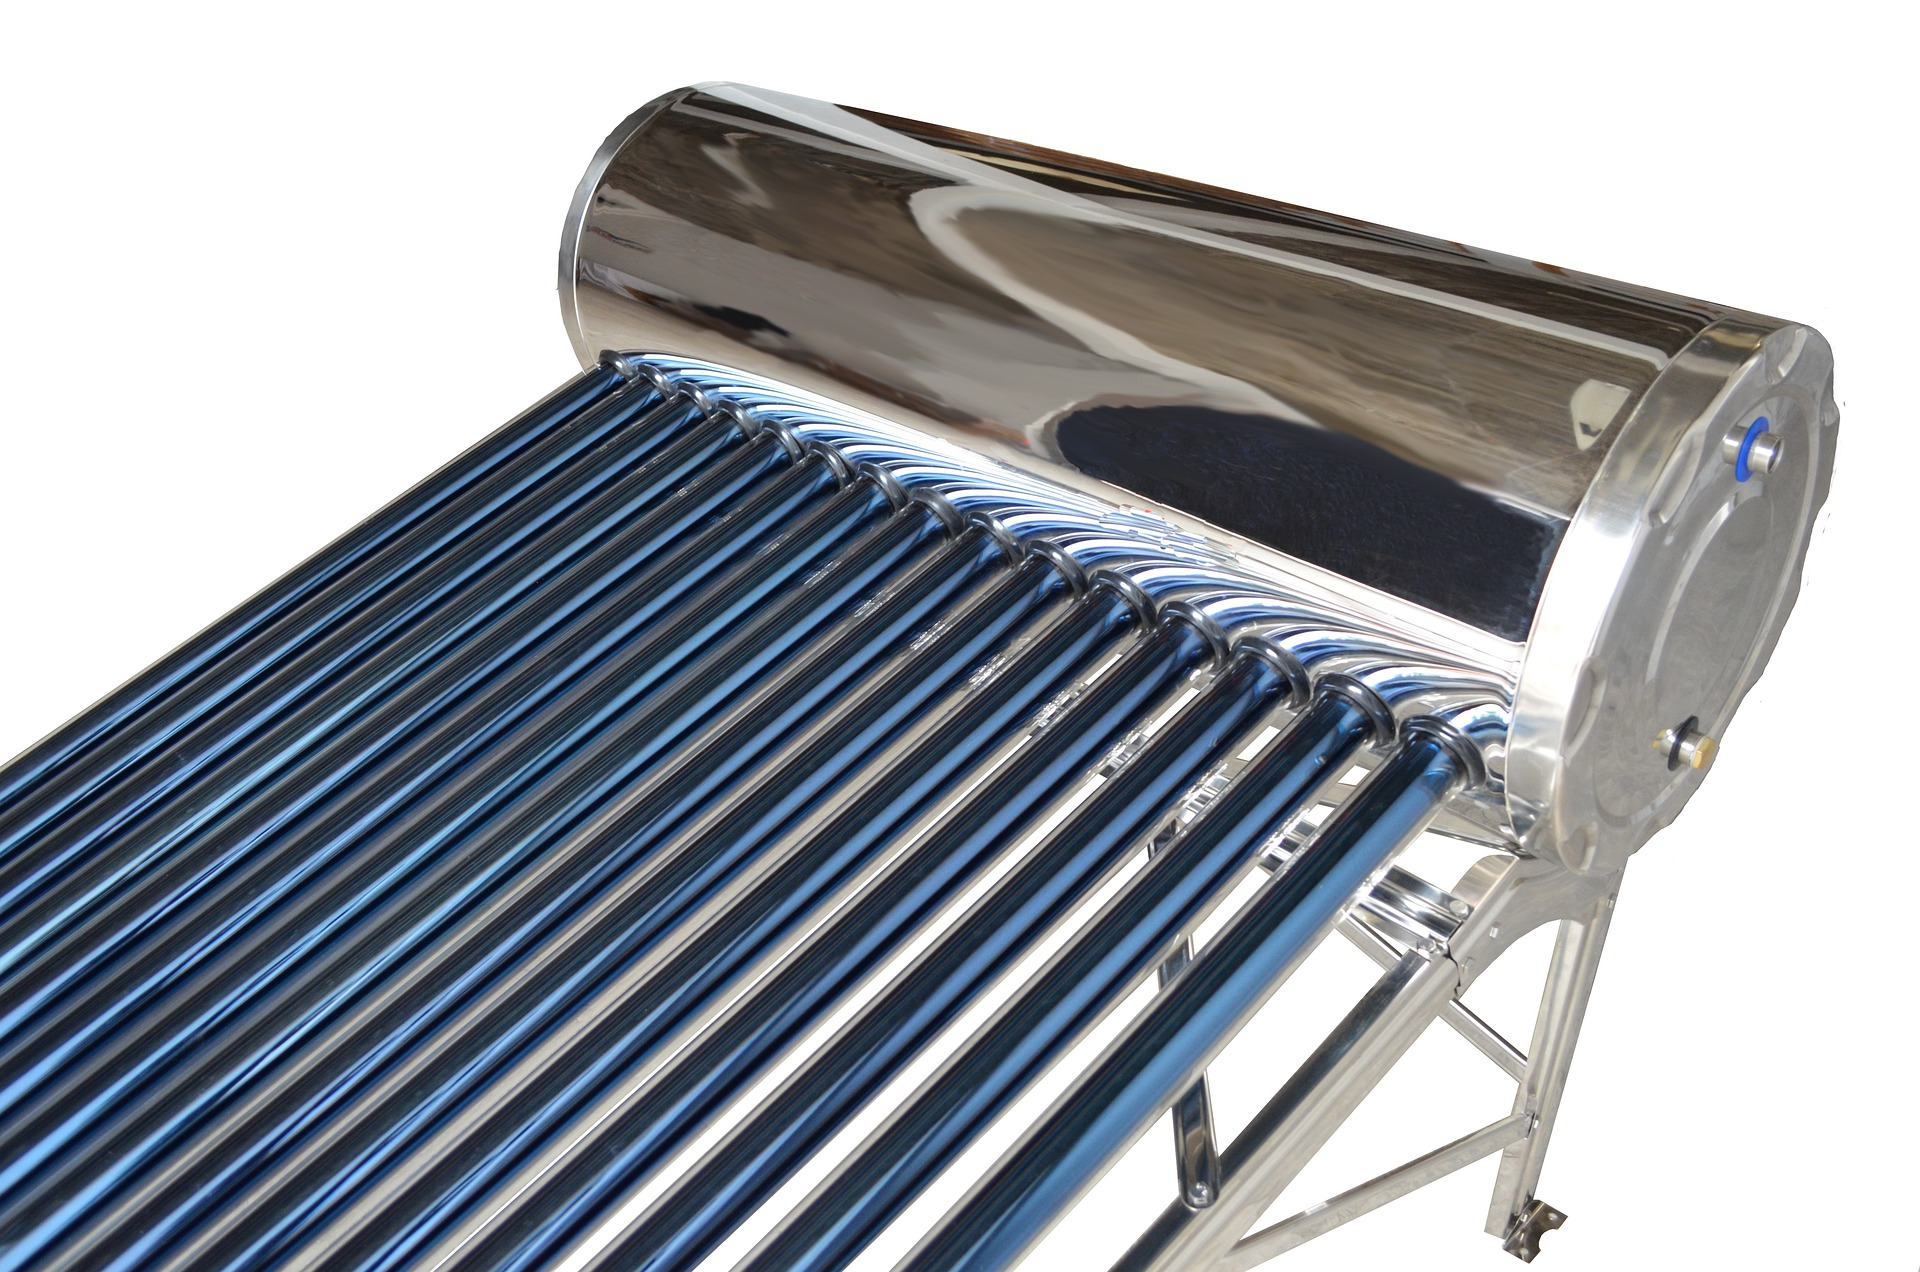 Rheem provides solar water heaters in Philippines